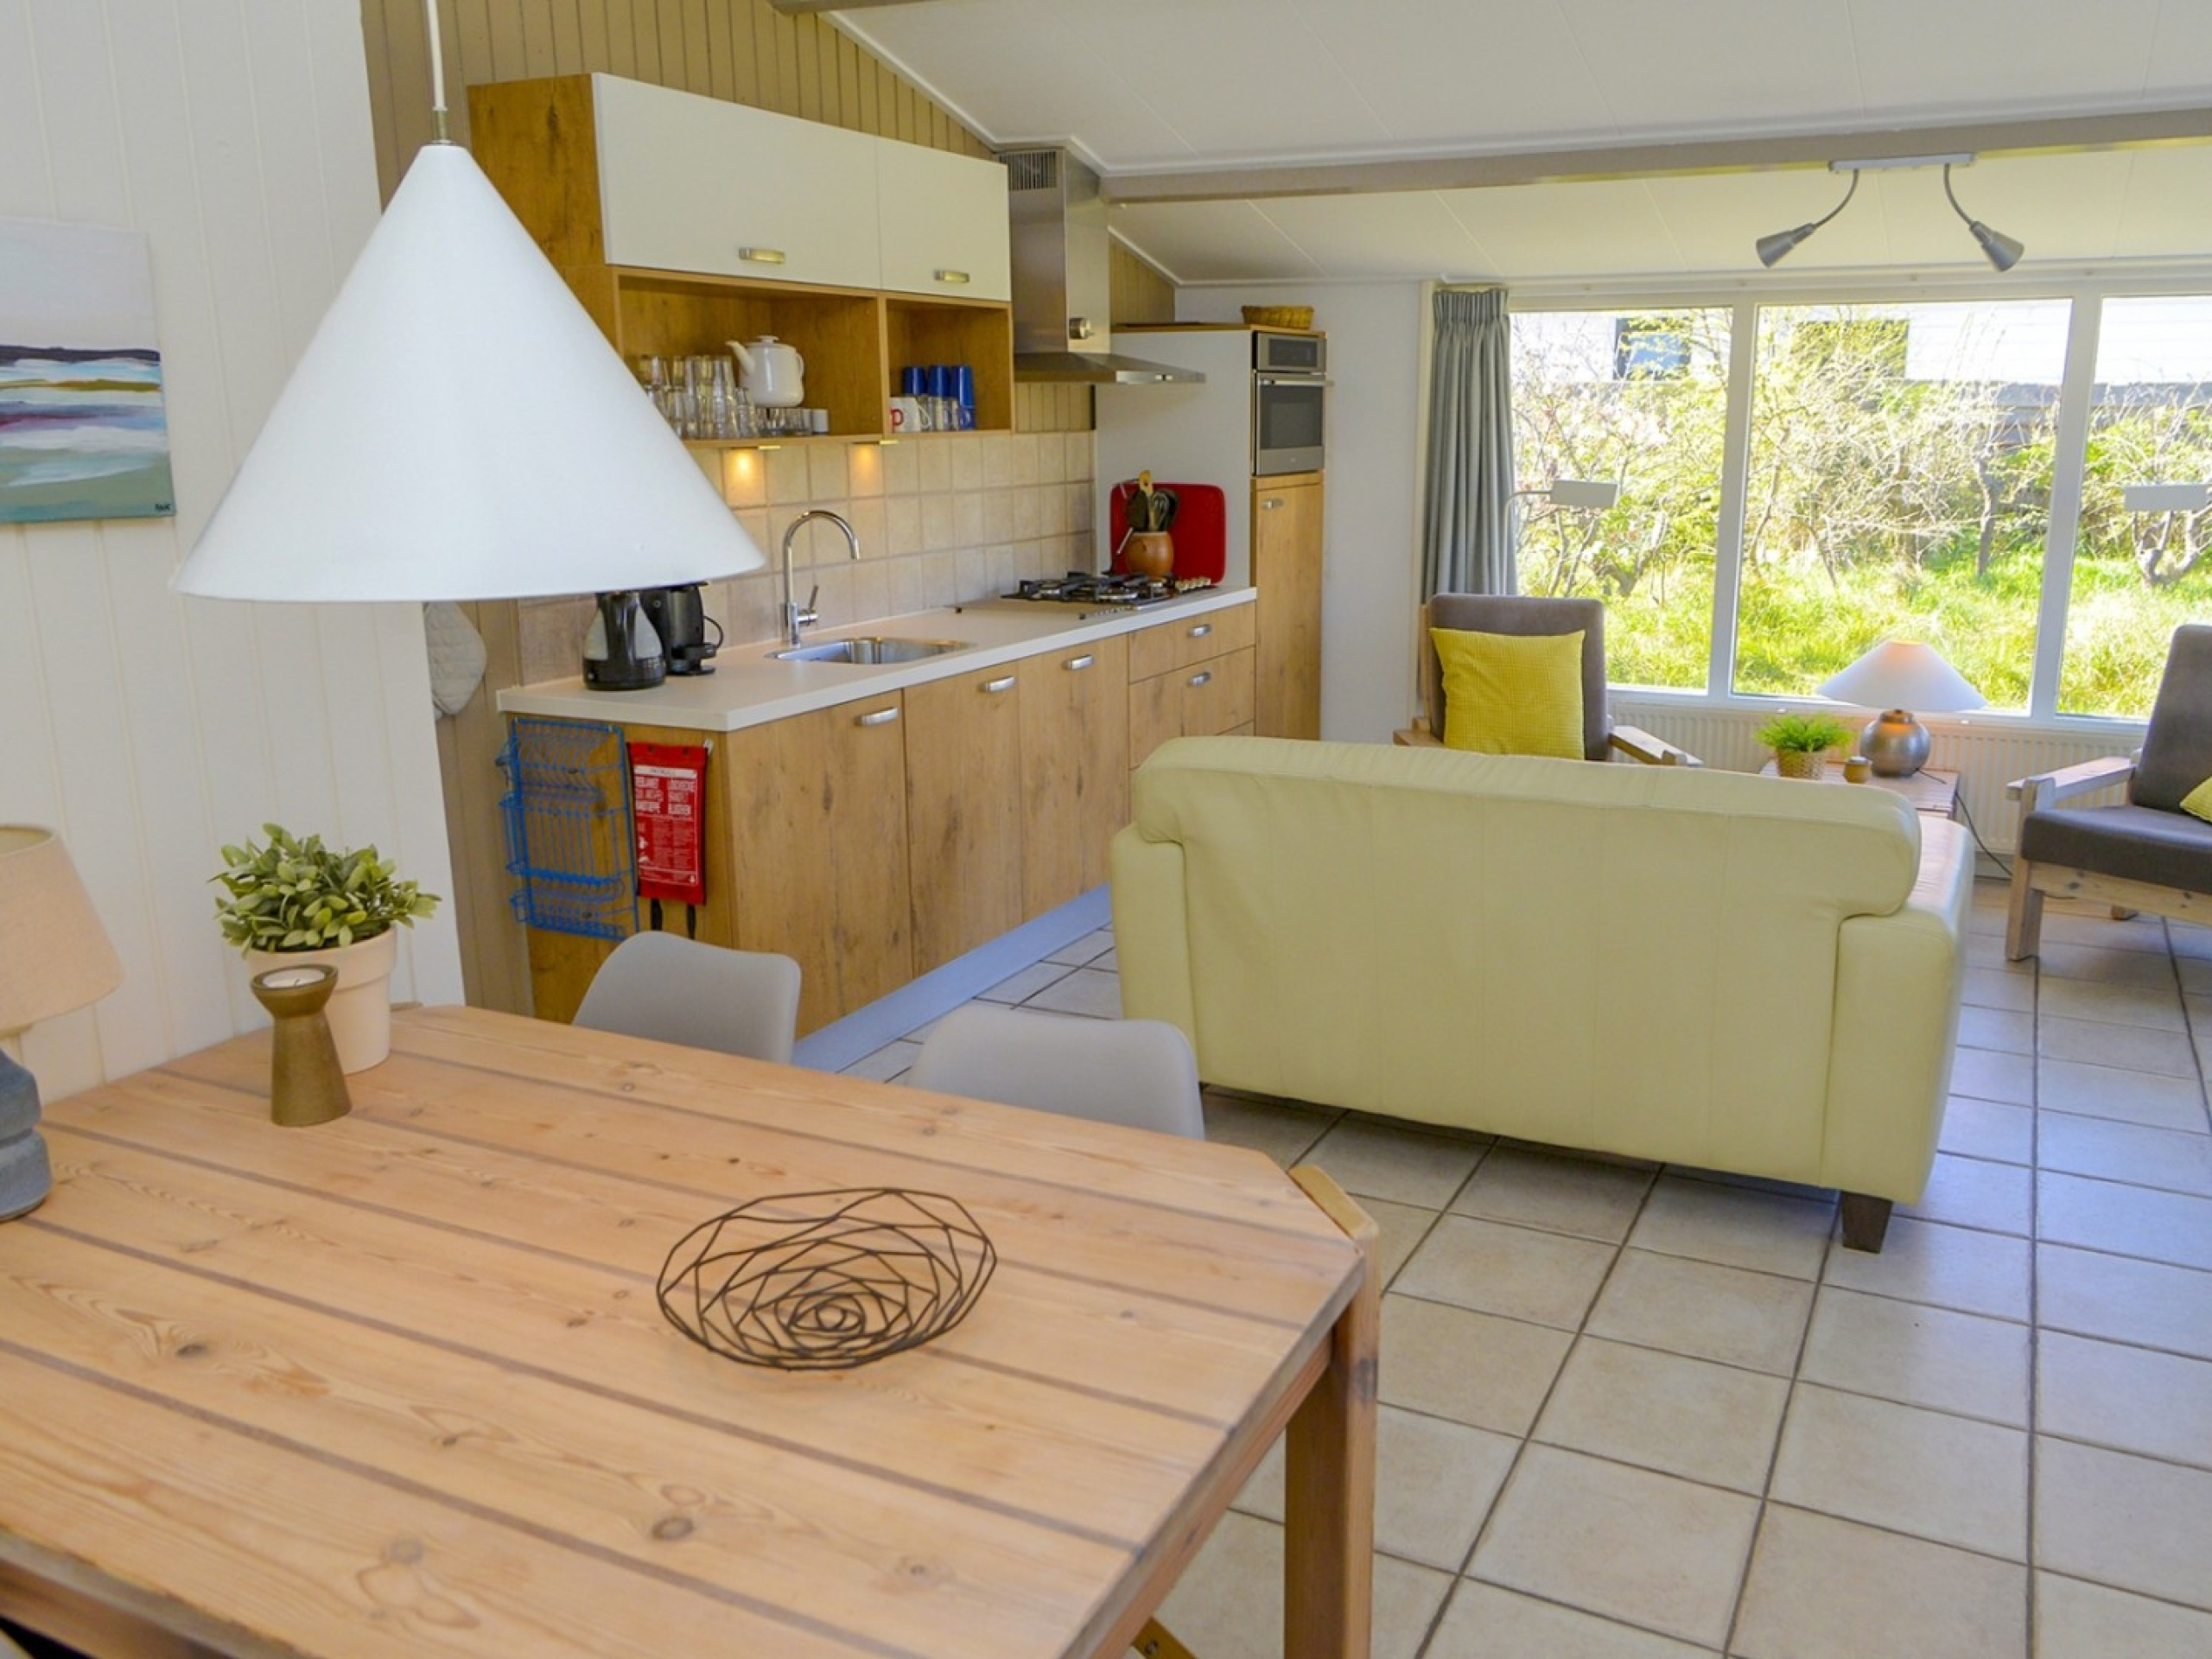 Cosy sunny holiday home in De Koog situated in the dunes